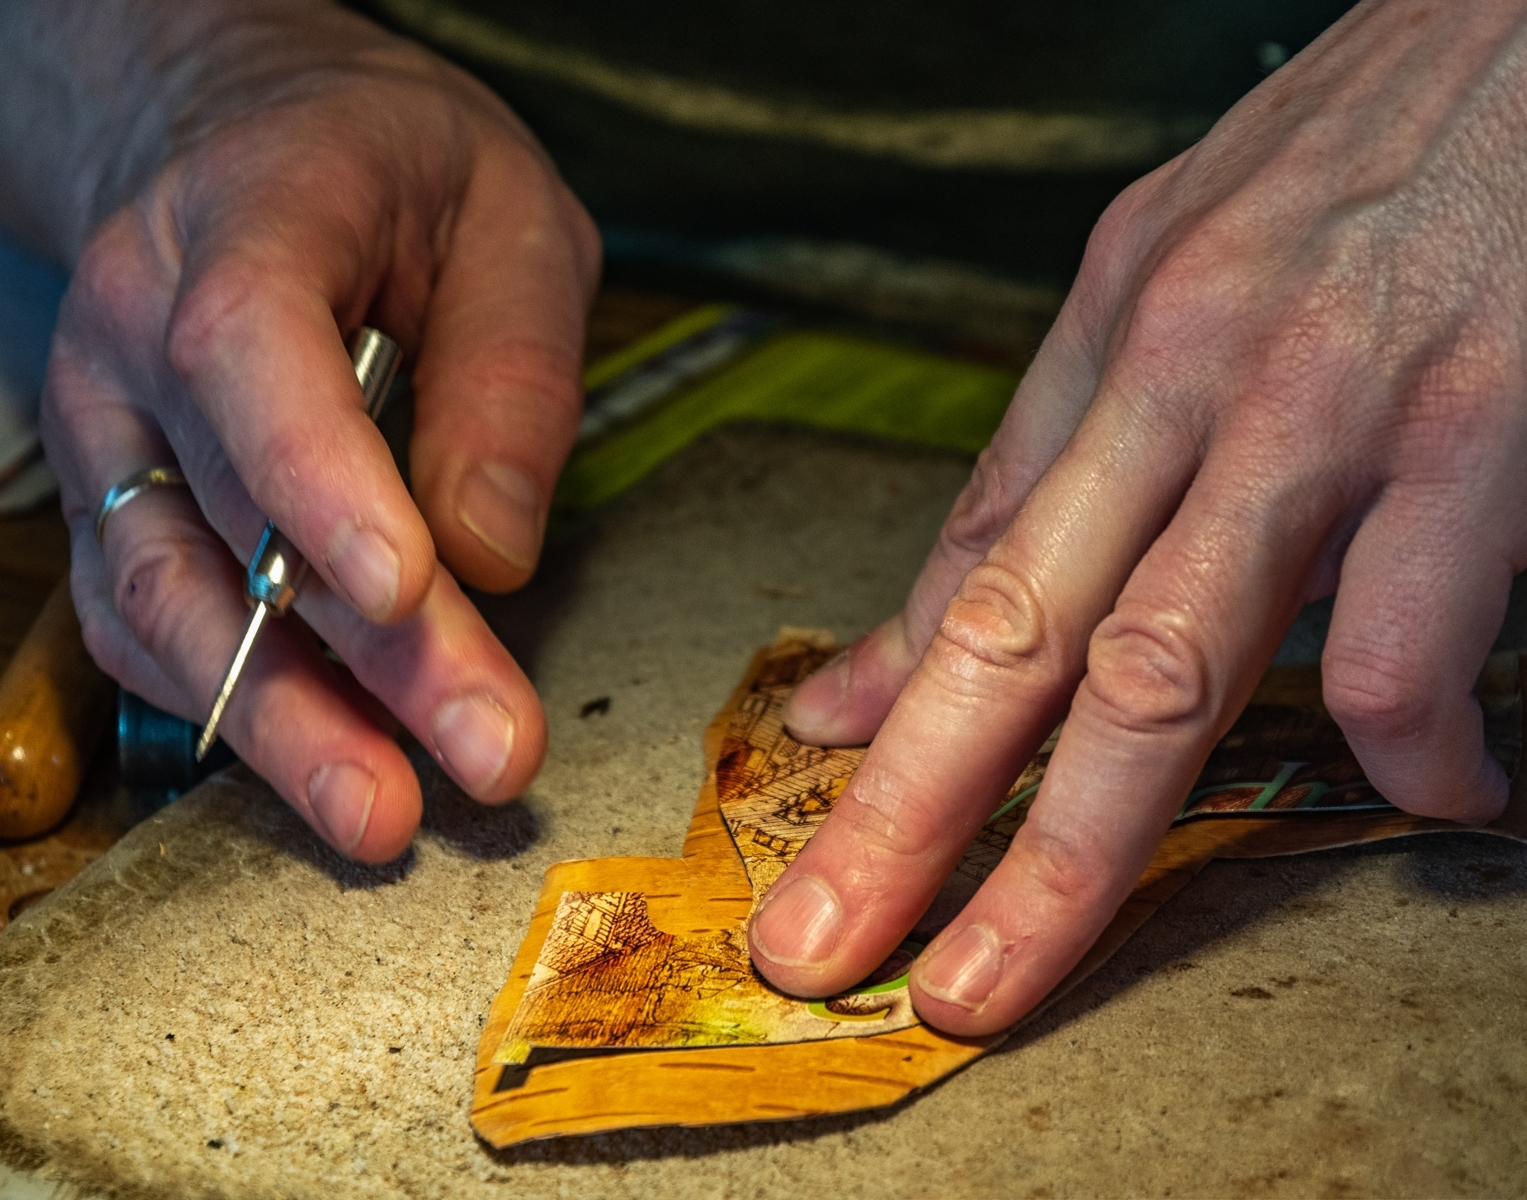 'Artisan's hands working with Birchbark, Mantrogy Russia' (PI 1 Place) by Robert Adler - RO